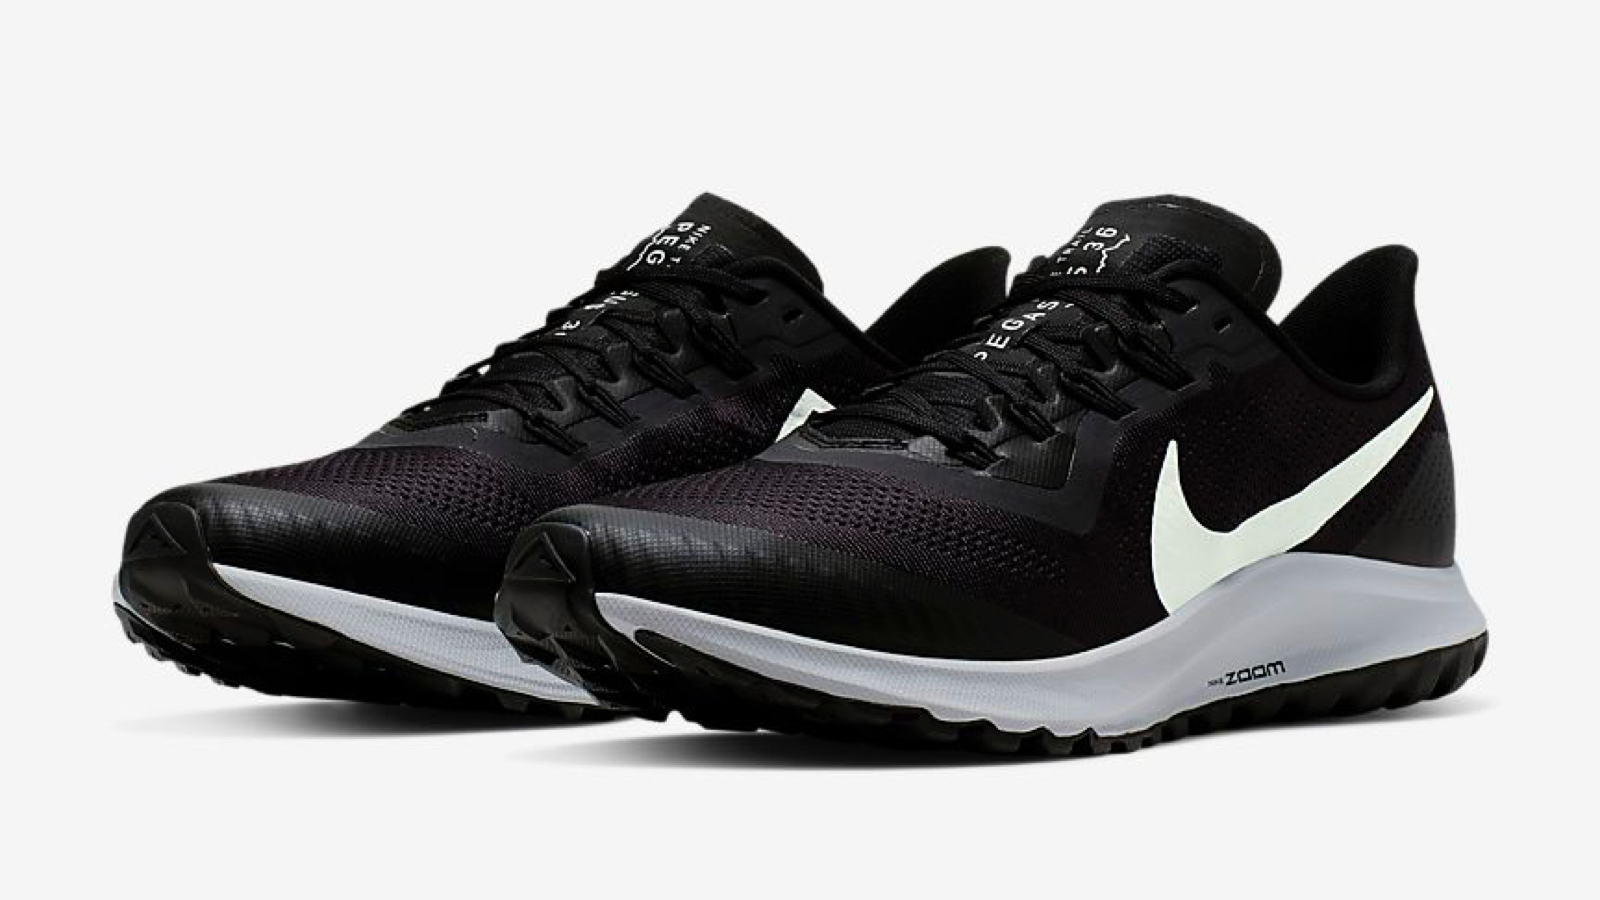 Descanso Campeonato proporción  Nike Air Zoom Pegasus 36 Trail review: Nike's best value-for-money trail running  shoes | T3